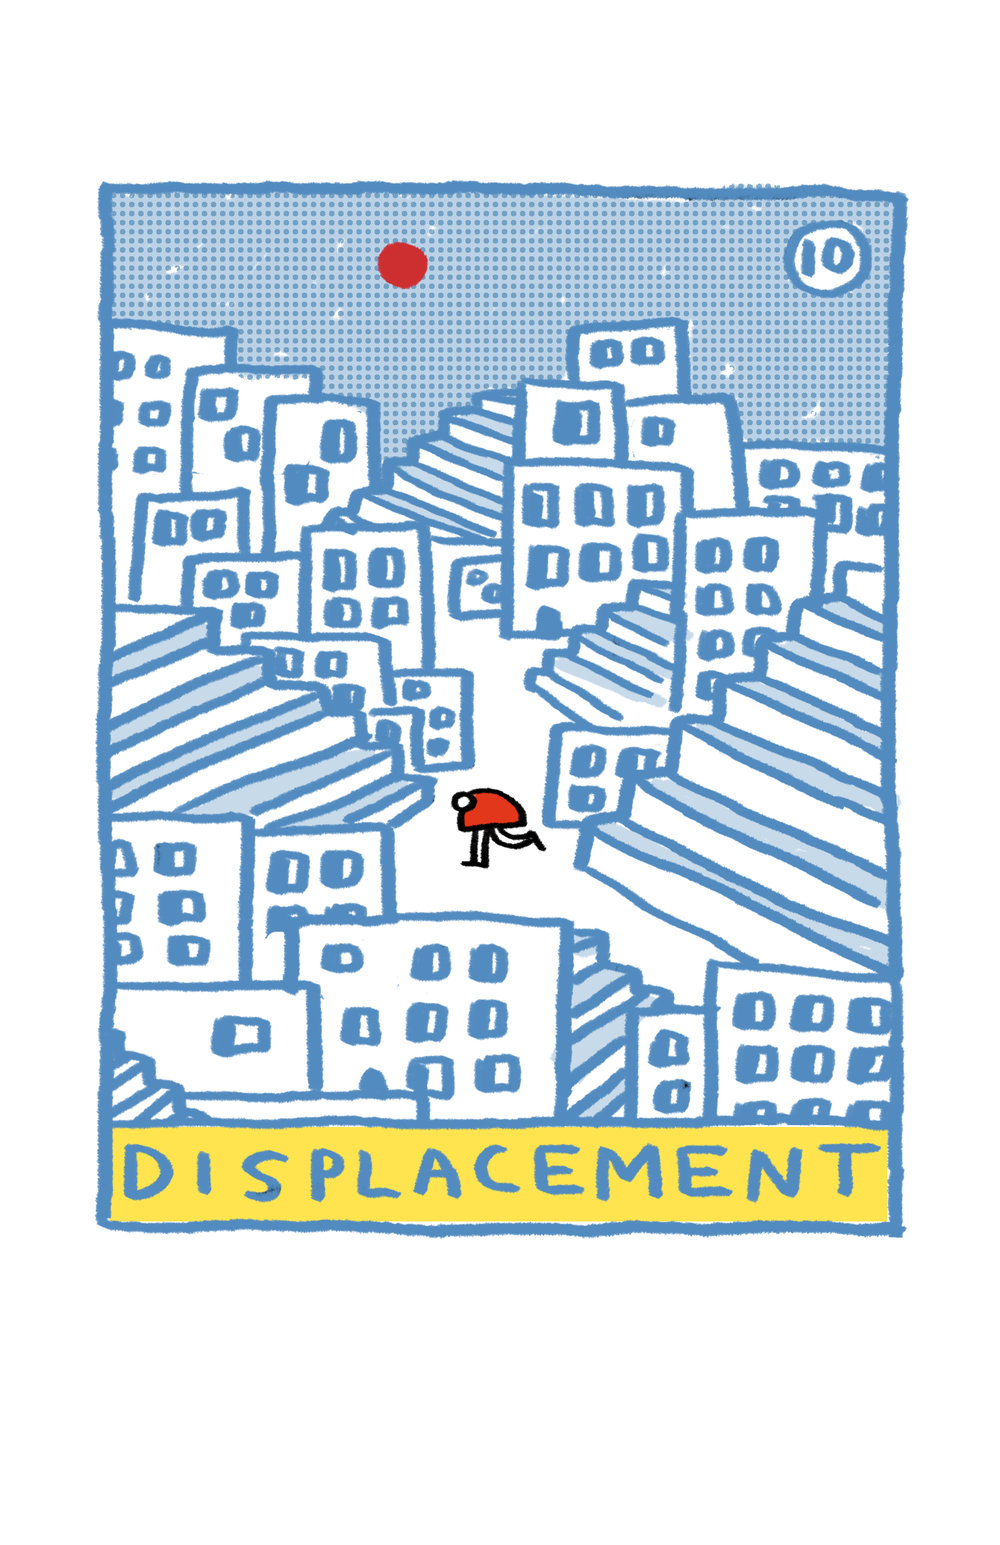 Cover design for the tenth issue of  Displacement